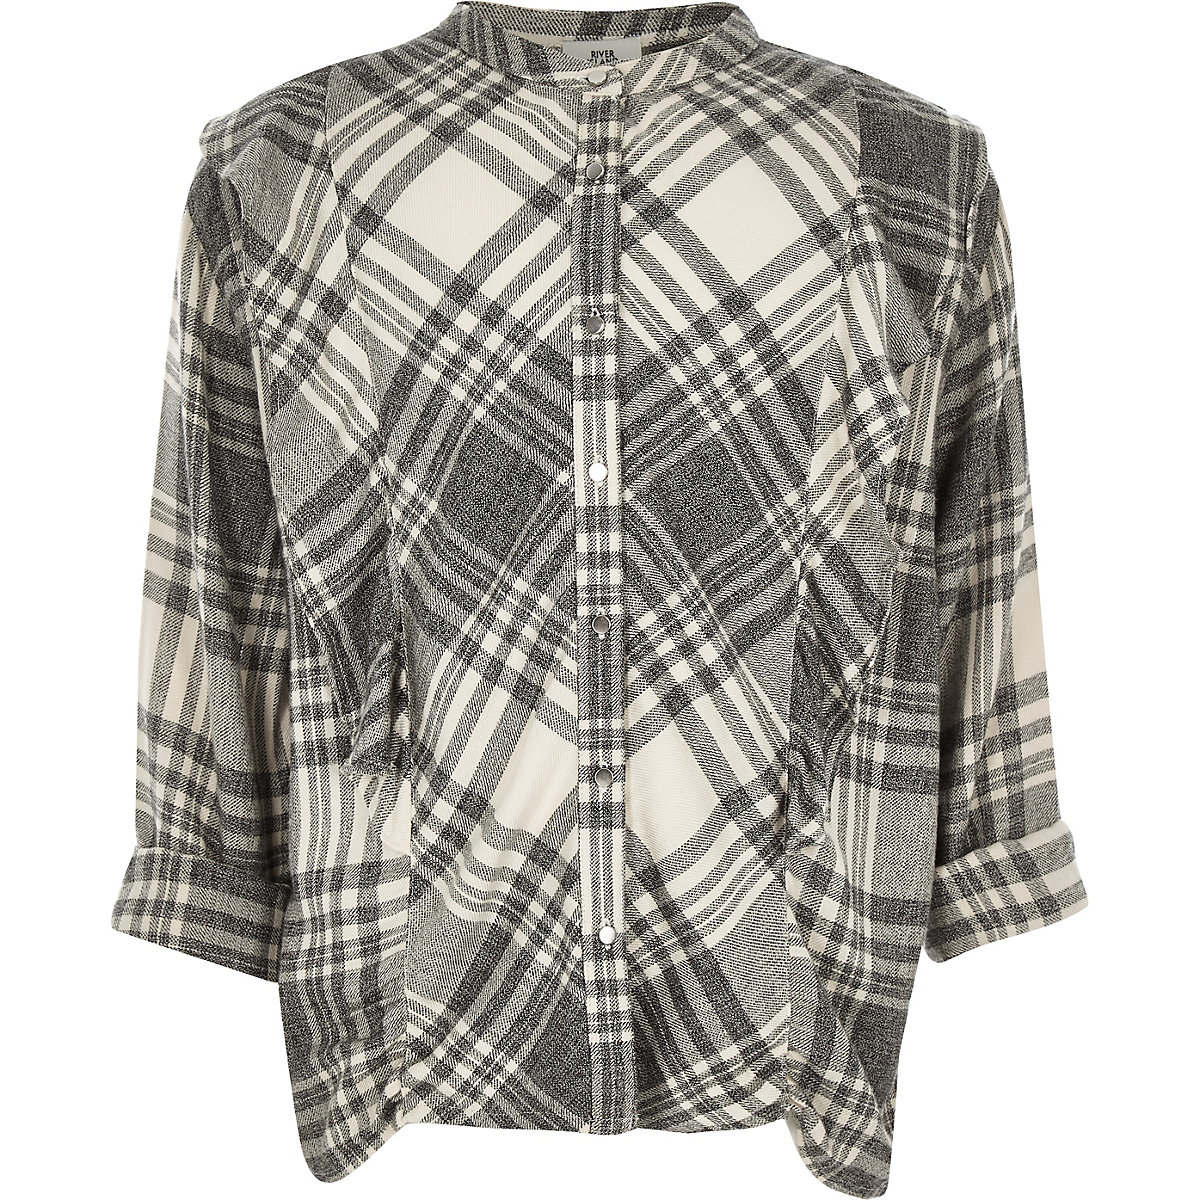 Girls grey check frill shirt